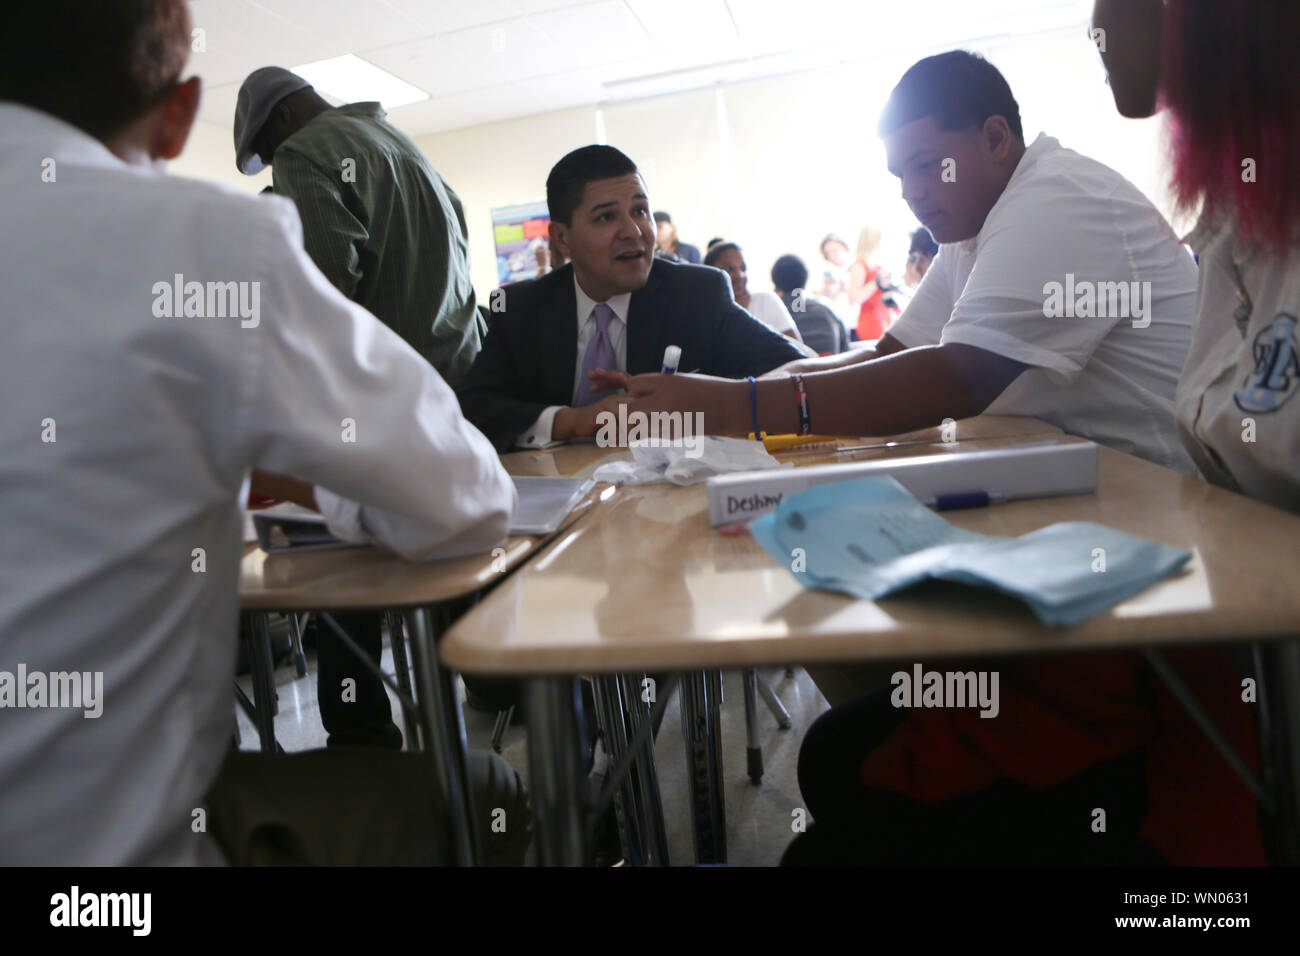 Bronx Leadership Academy High Resolution Stock Photography And Images Alamy